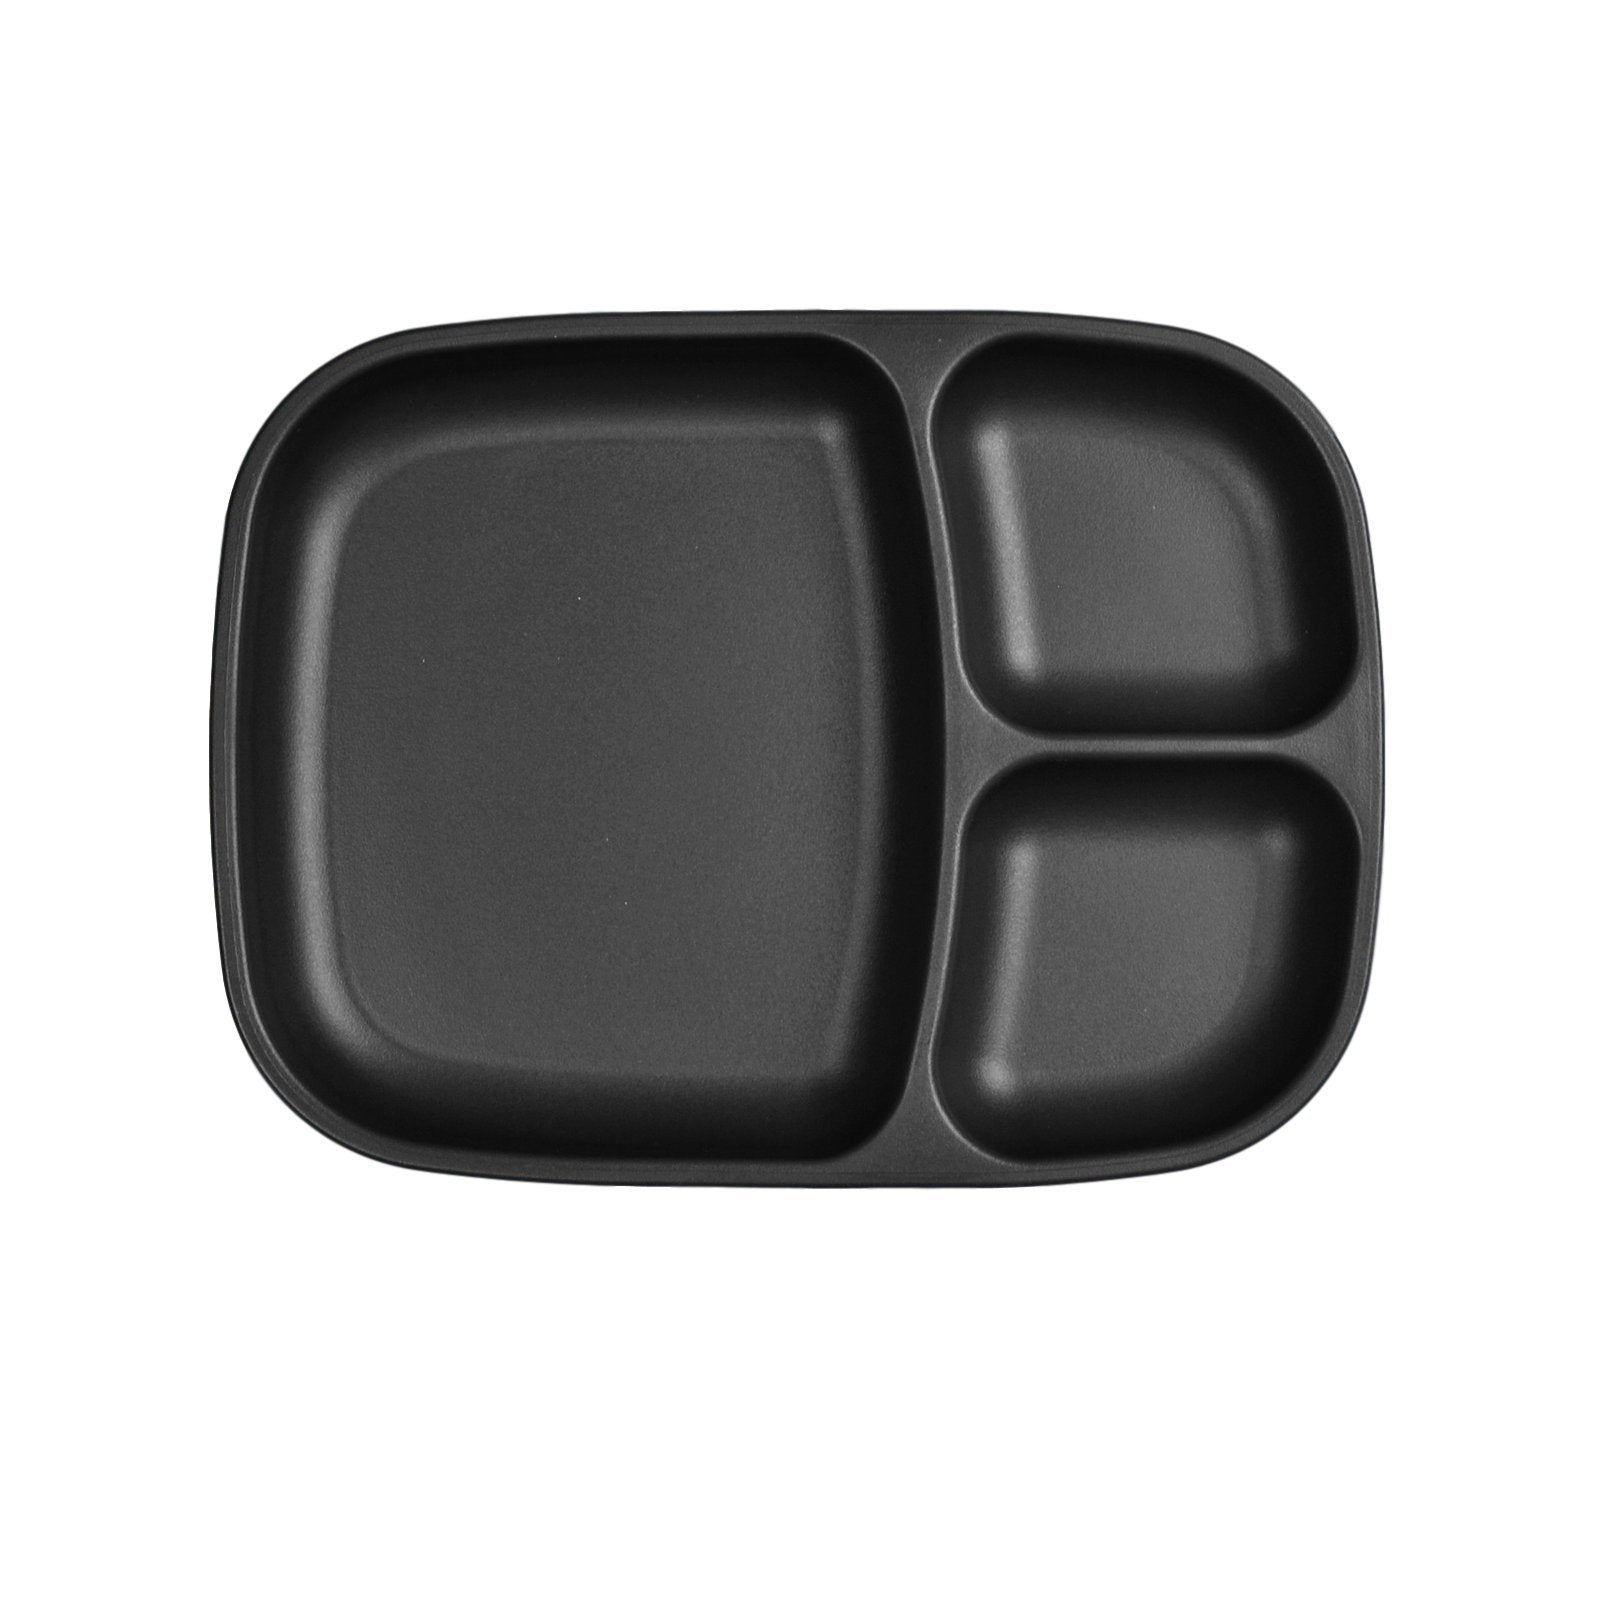 Replay Large Divided Plate Replay Dinnerware Black at Little Earth Nest Eco Shop